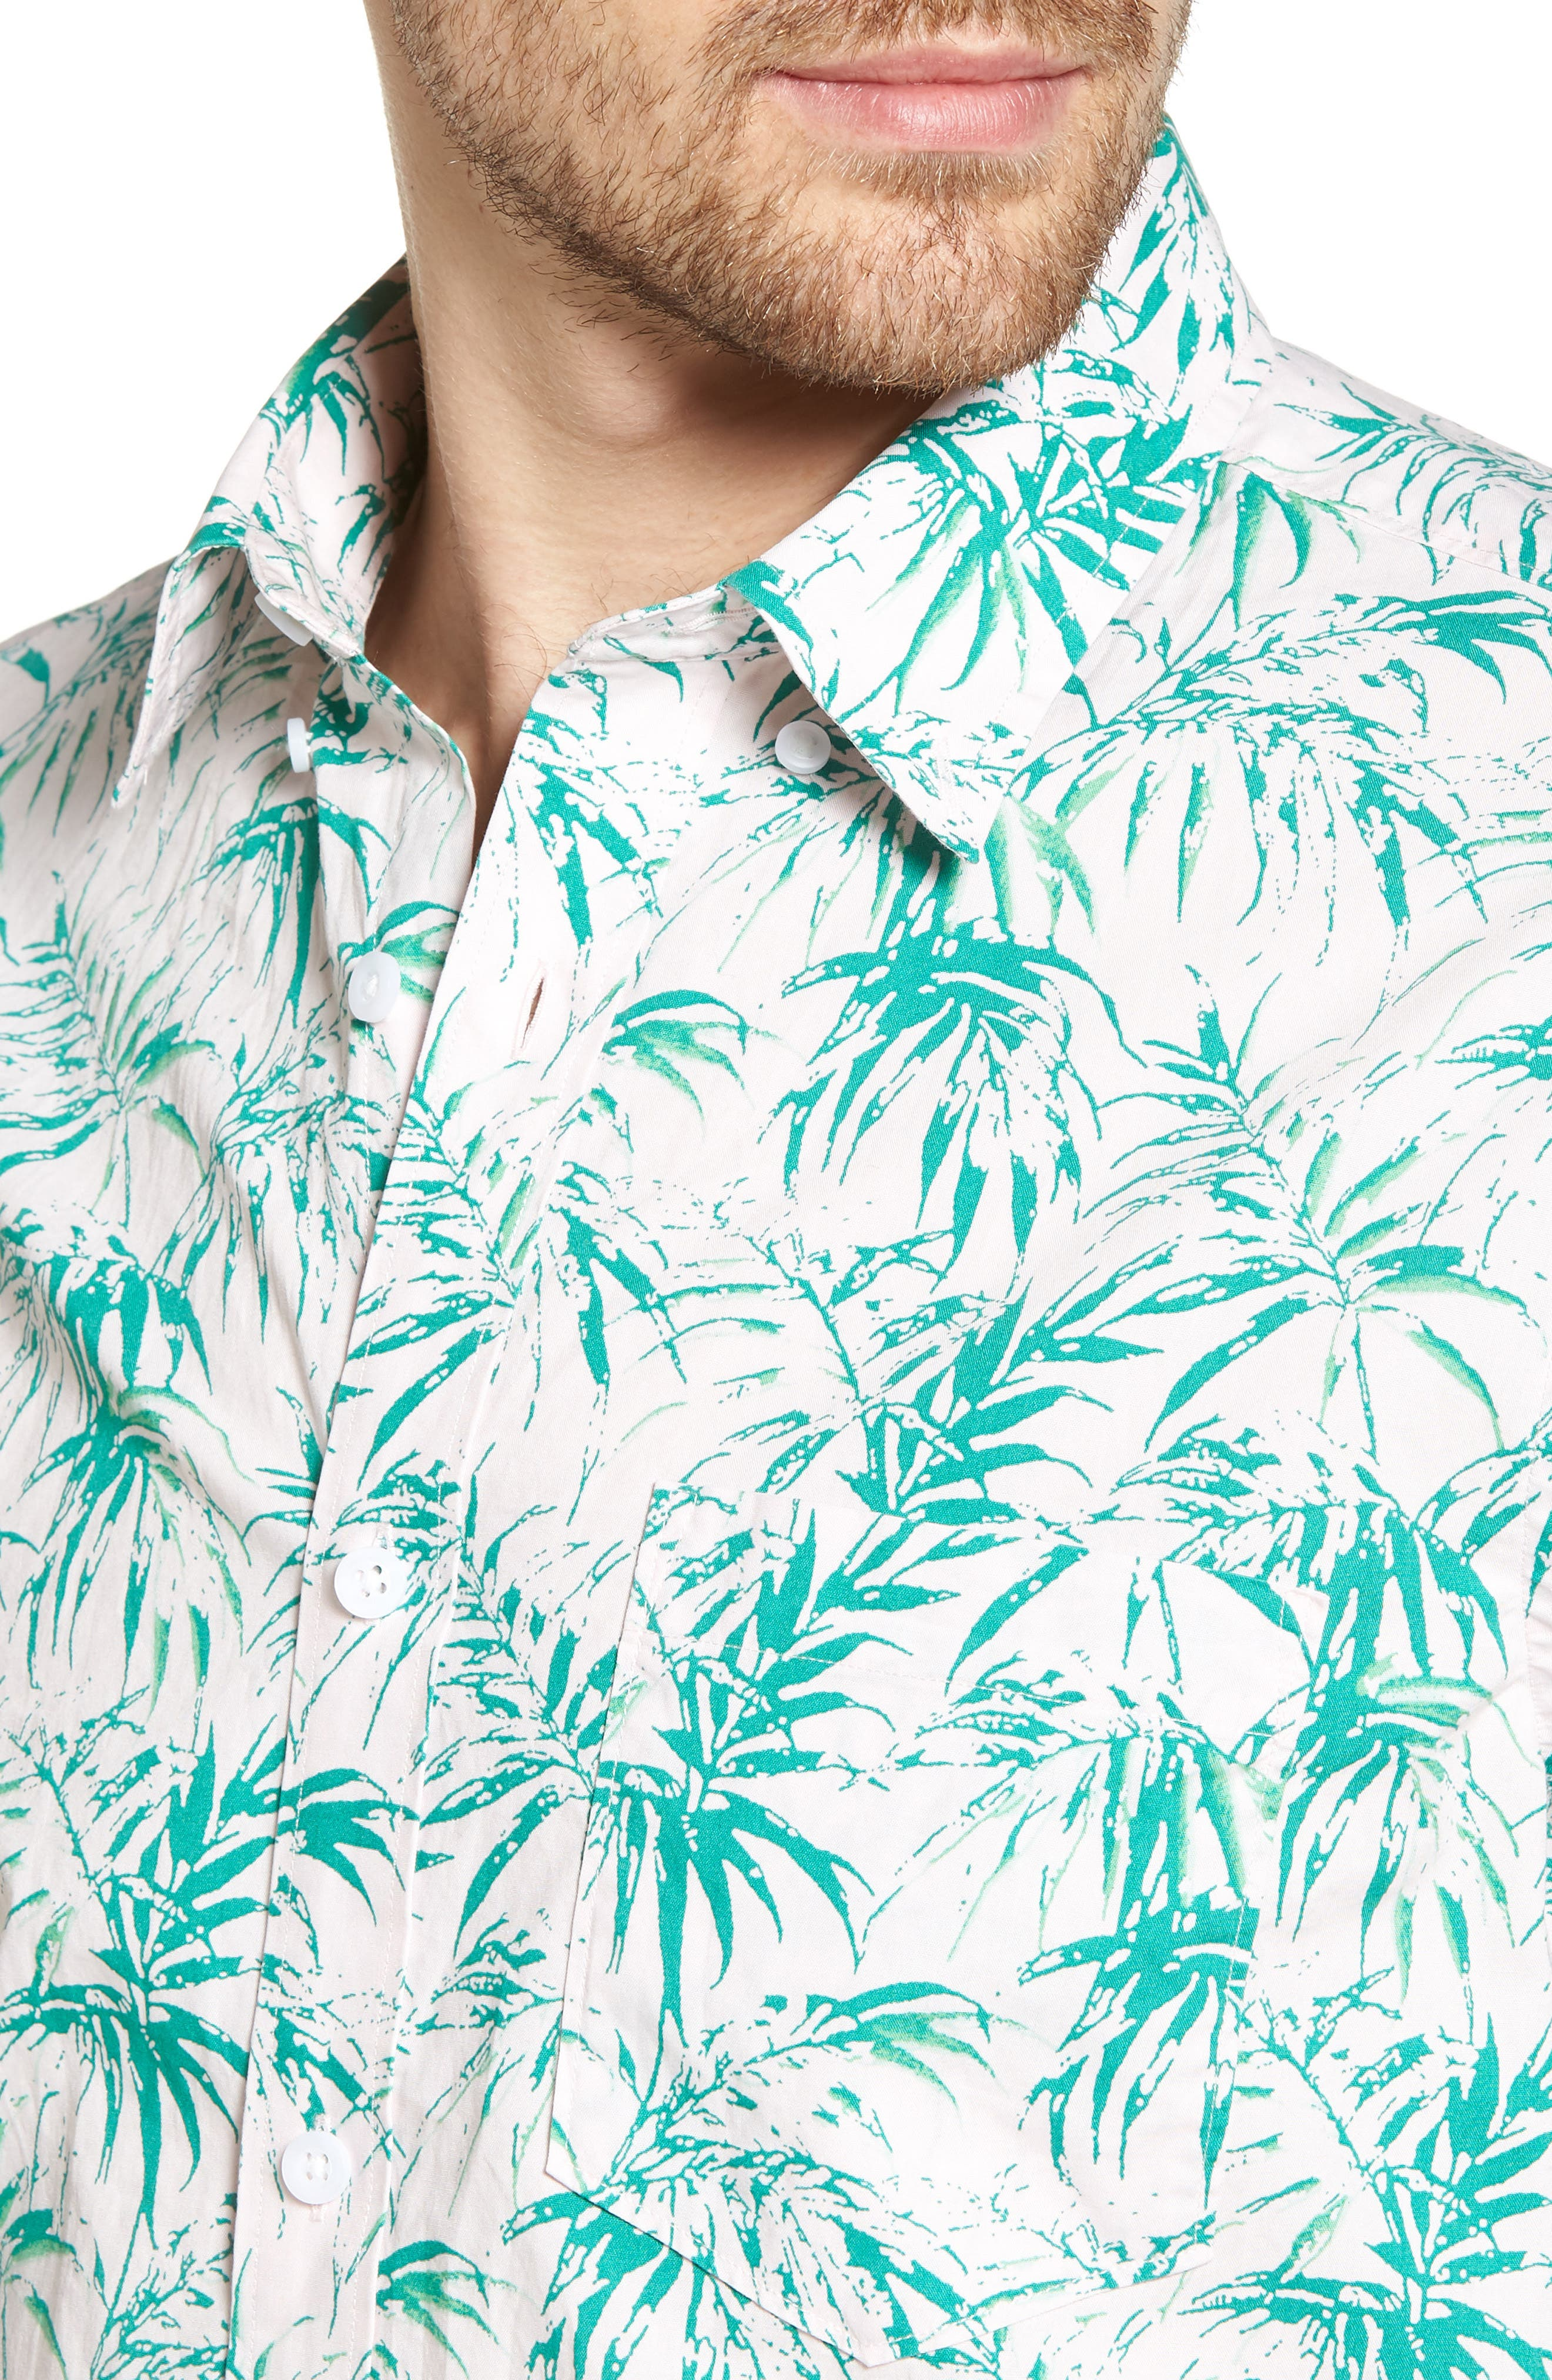 Trim Fit Palm Print Sport Shirt,                             Alternate thumbnail 2, color,                             Pink Green Stamped Palms